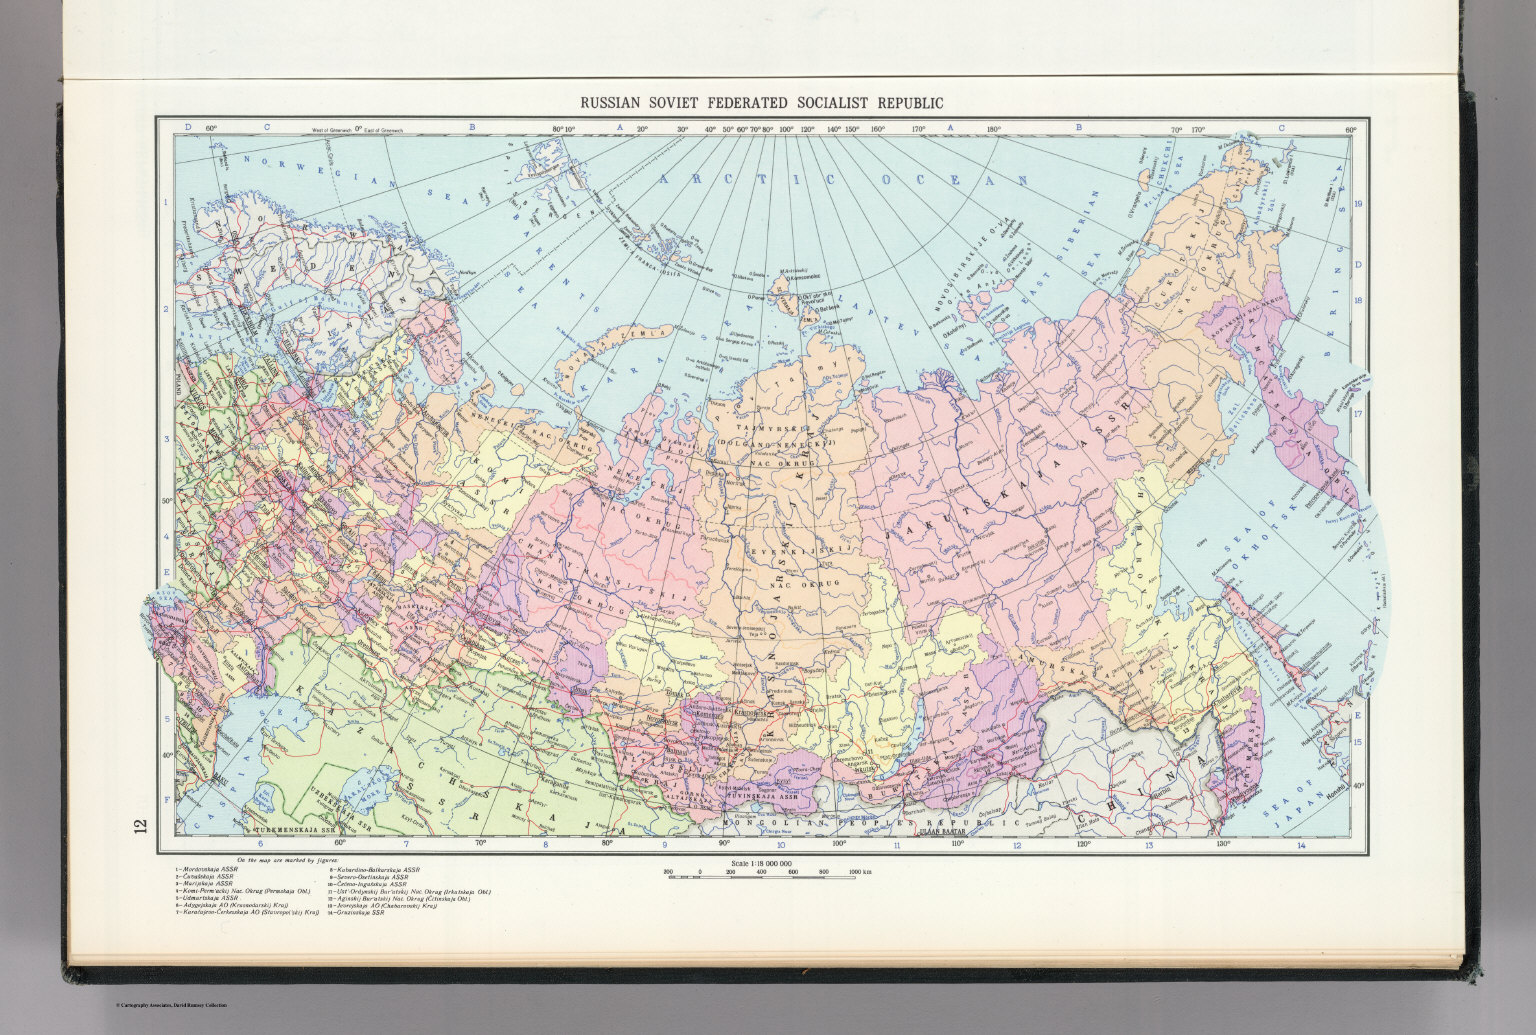 12 russian soviet federated socialist republic political the 12 russian soviet federated socialist republic political the world atlas gumiabroncs Gallery